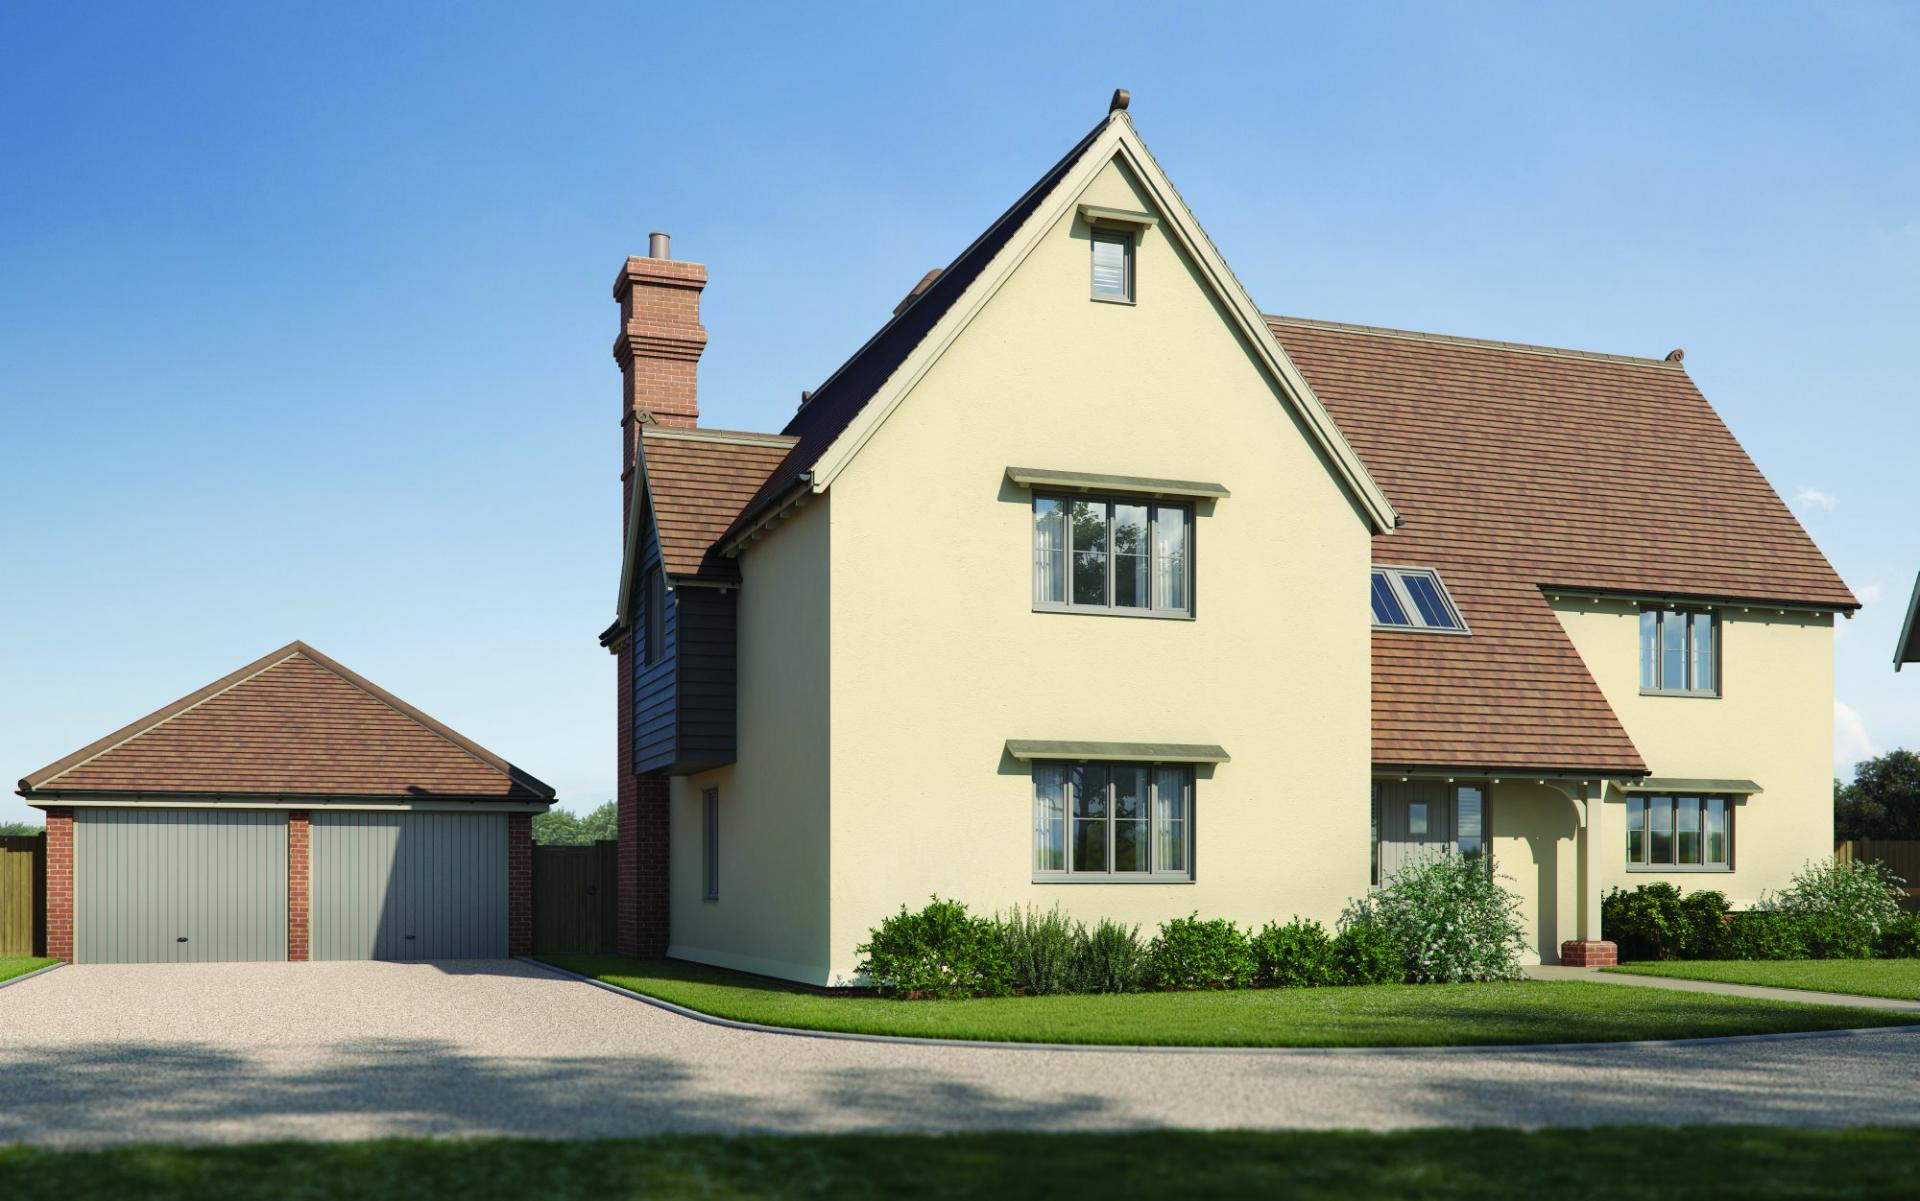 5 bedroom detached house for sale in clacton on sea for 5 bedroom new build homes